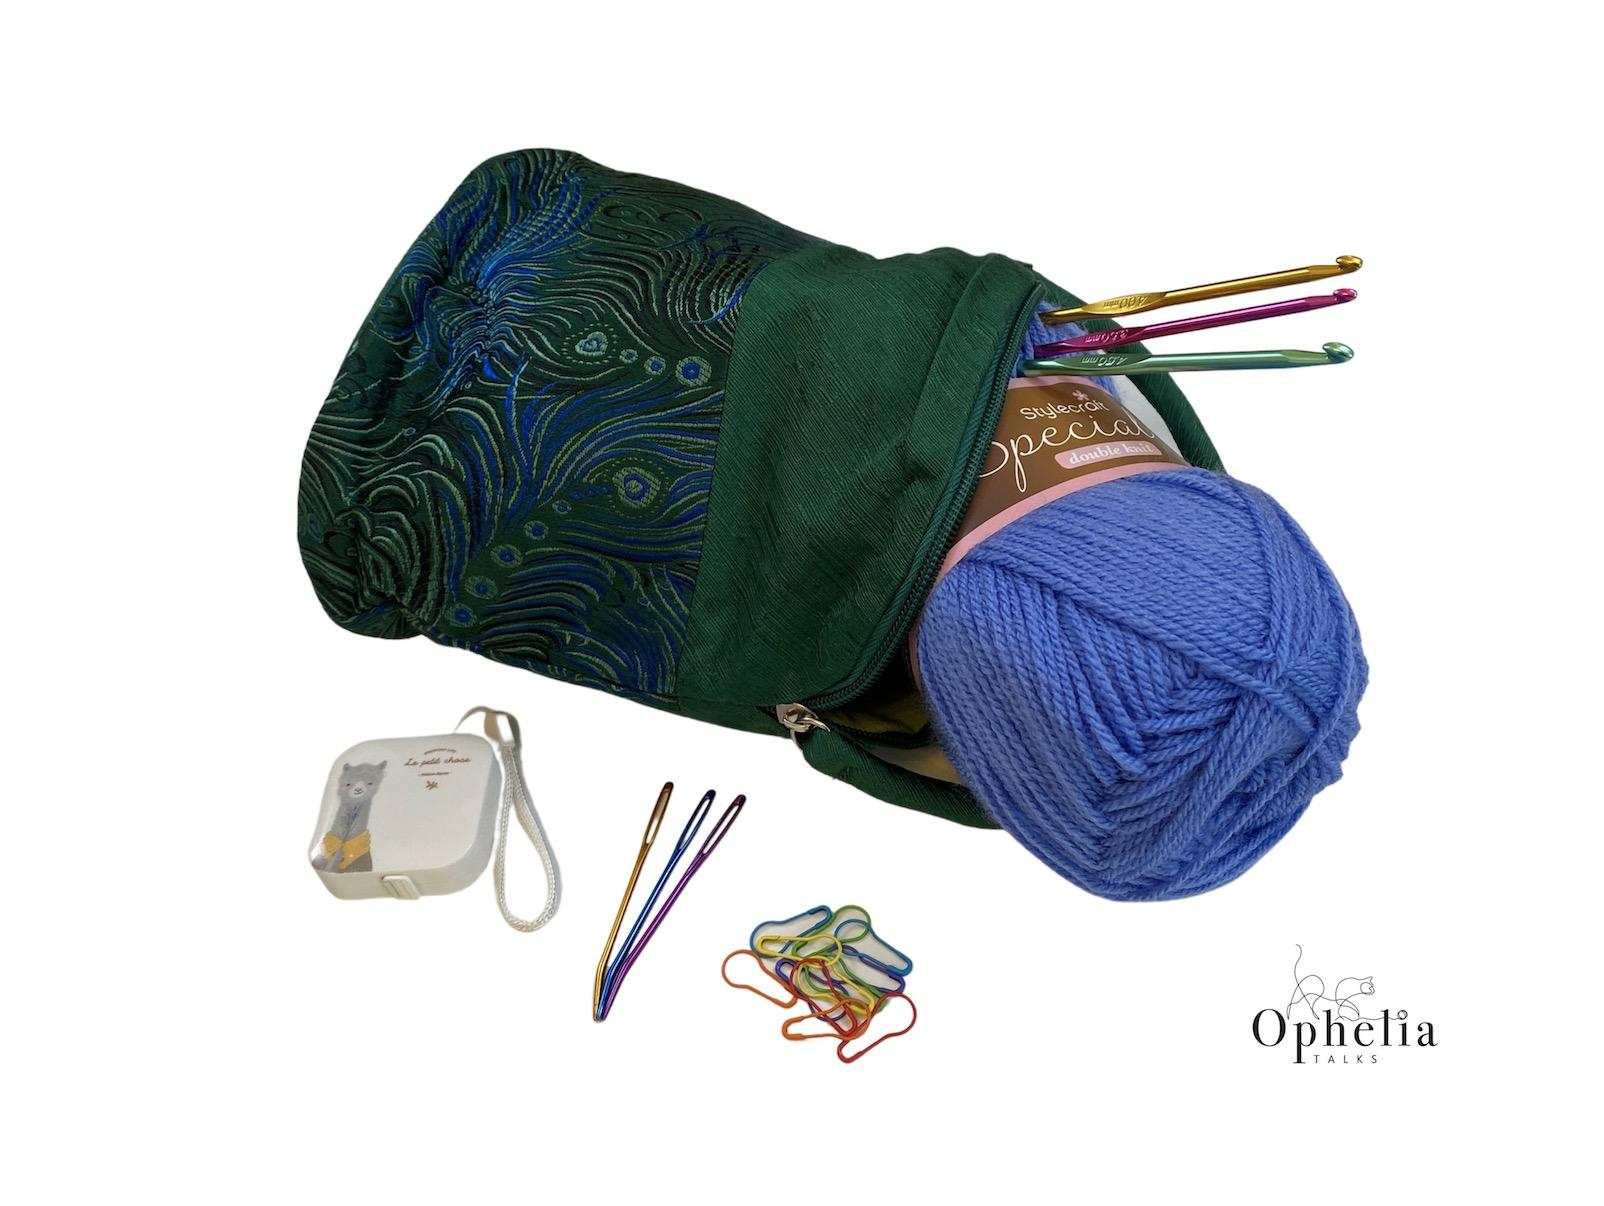 Beginner crochet kit with contents